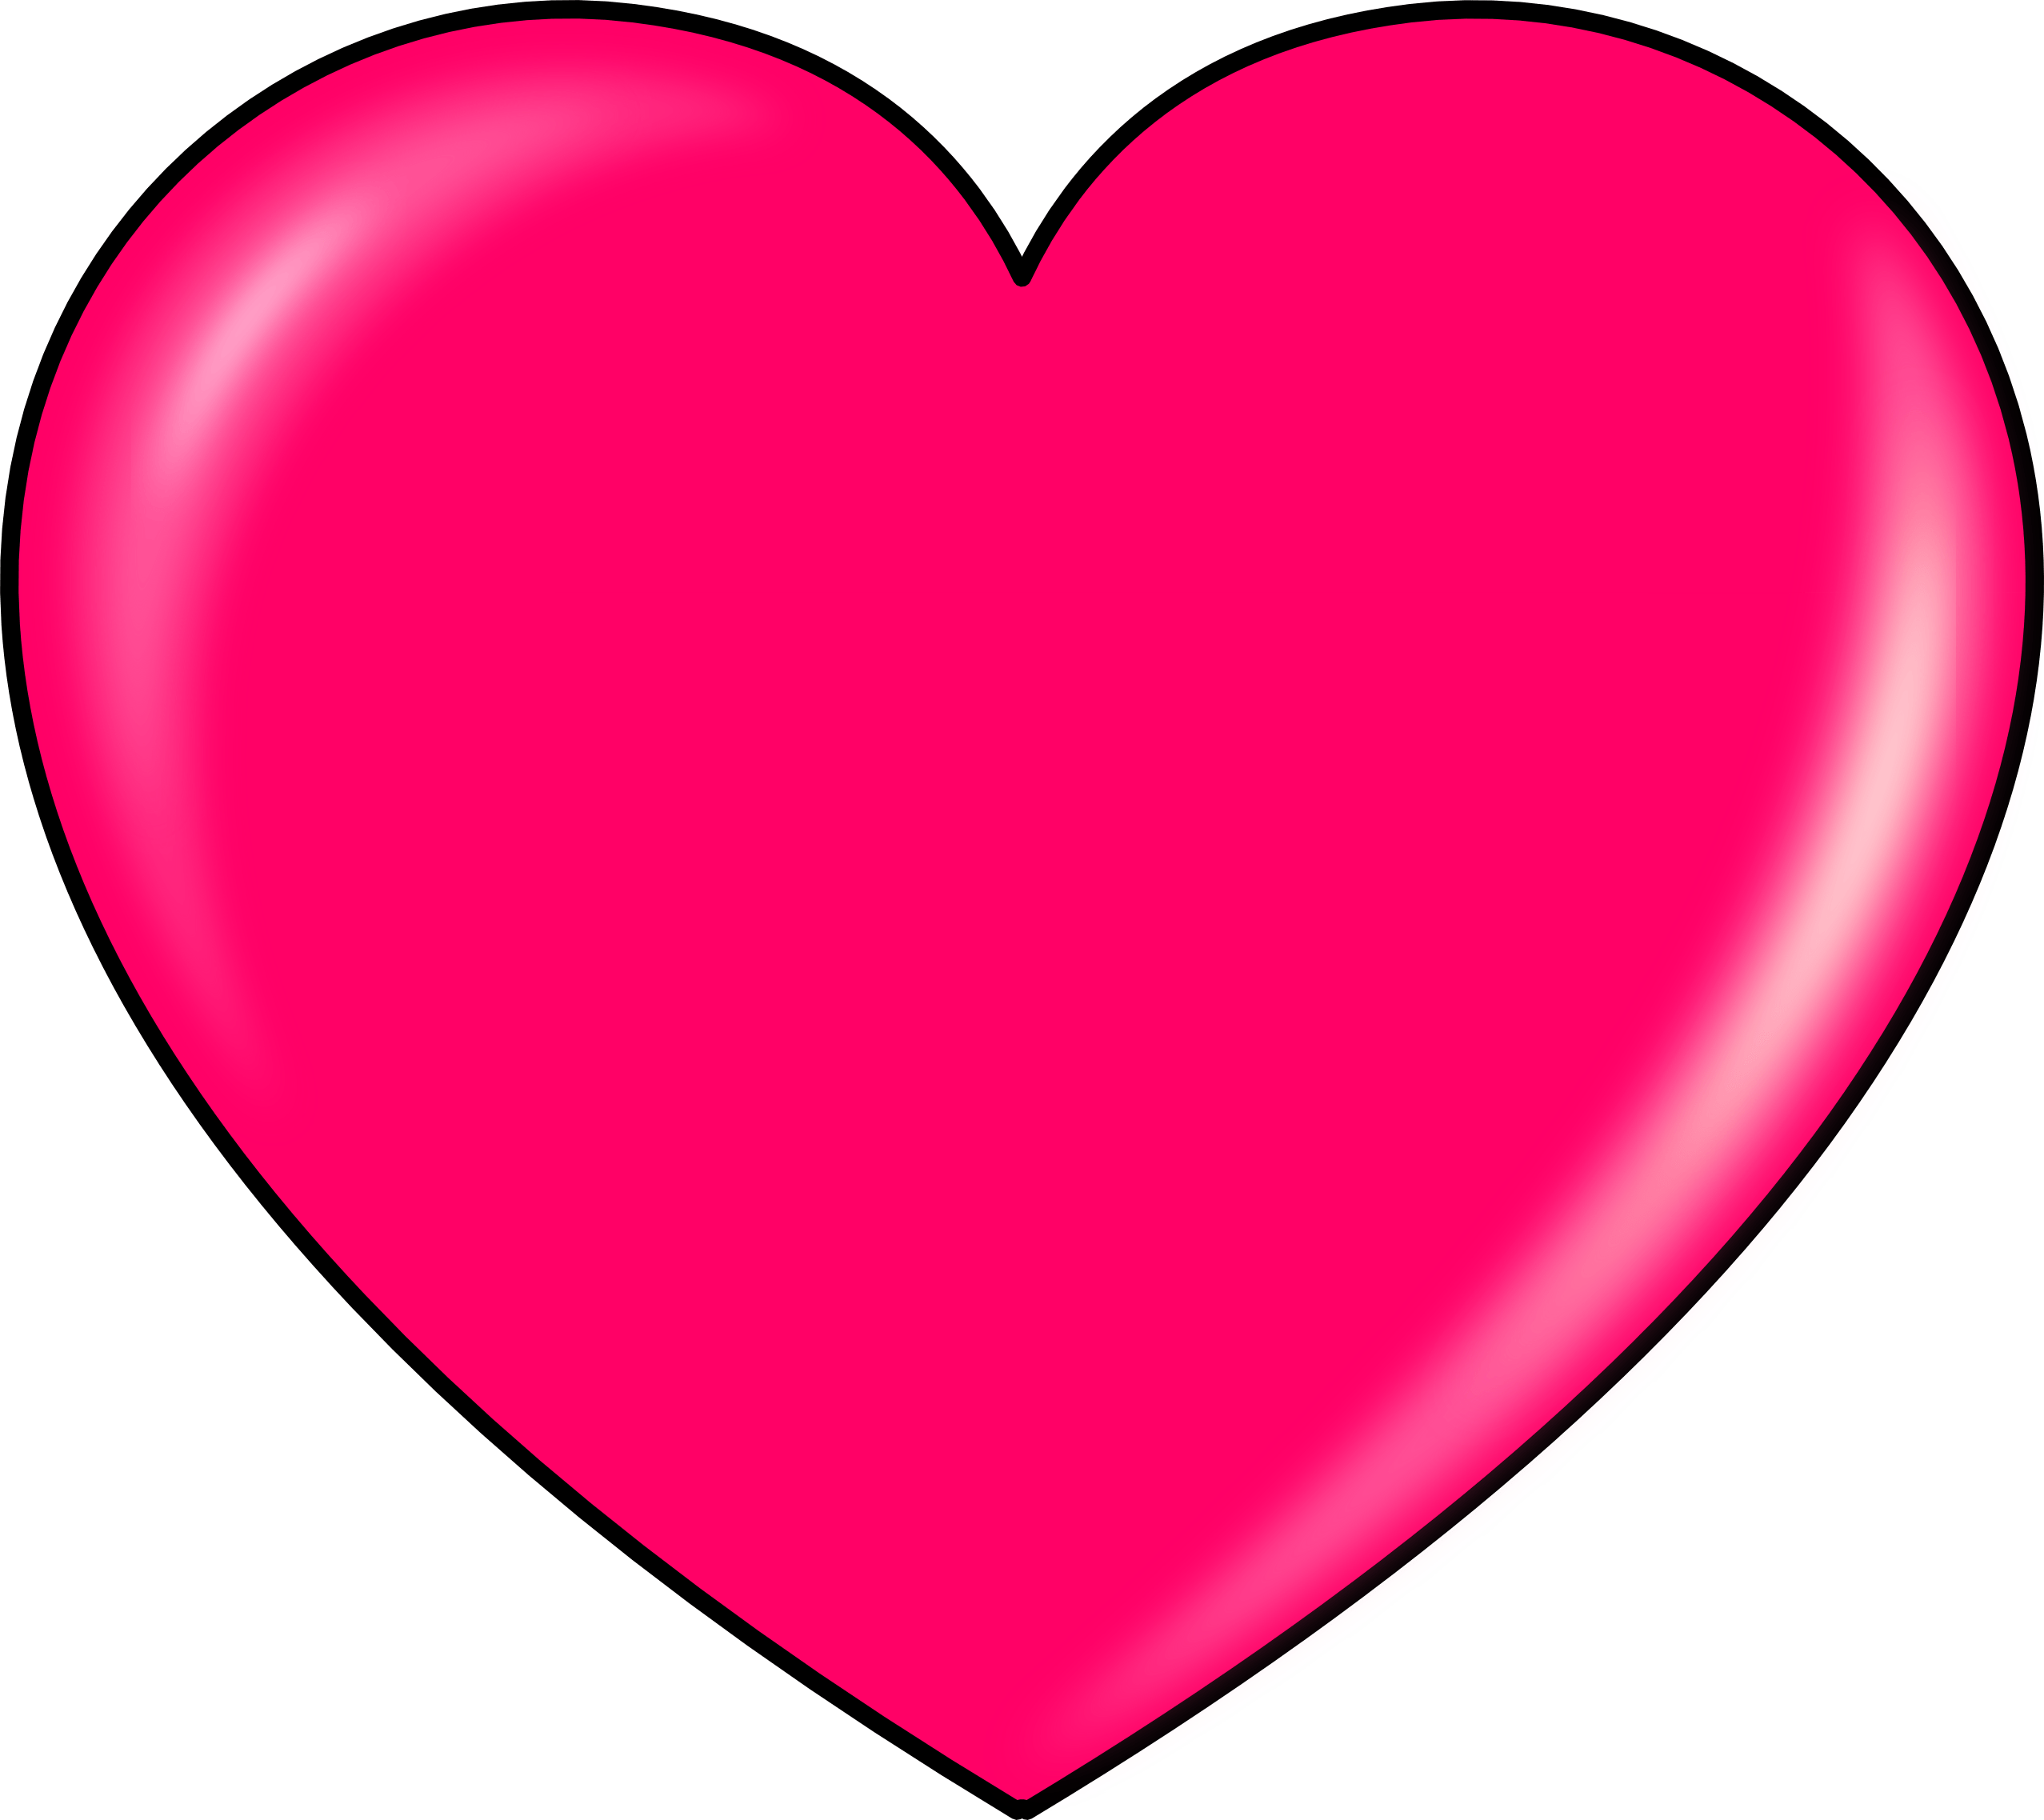 pink heart clipart transparent png #14319